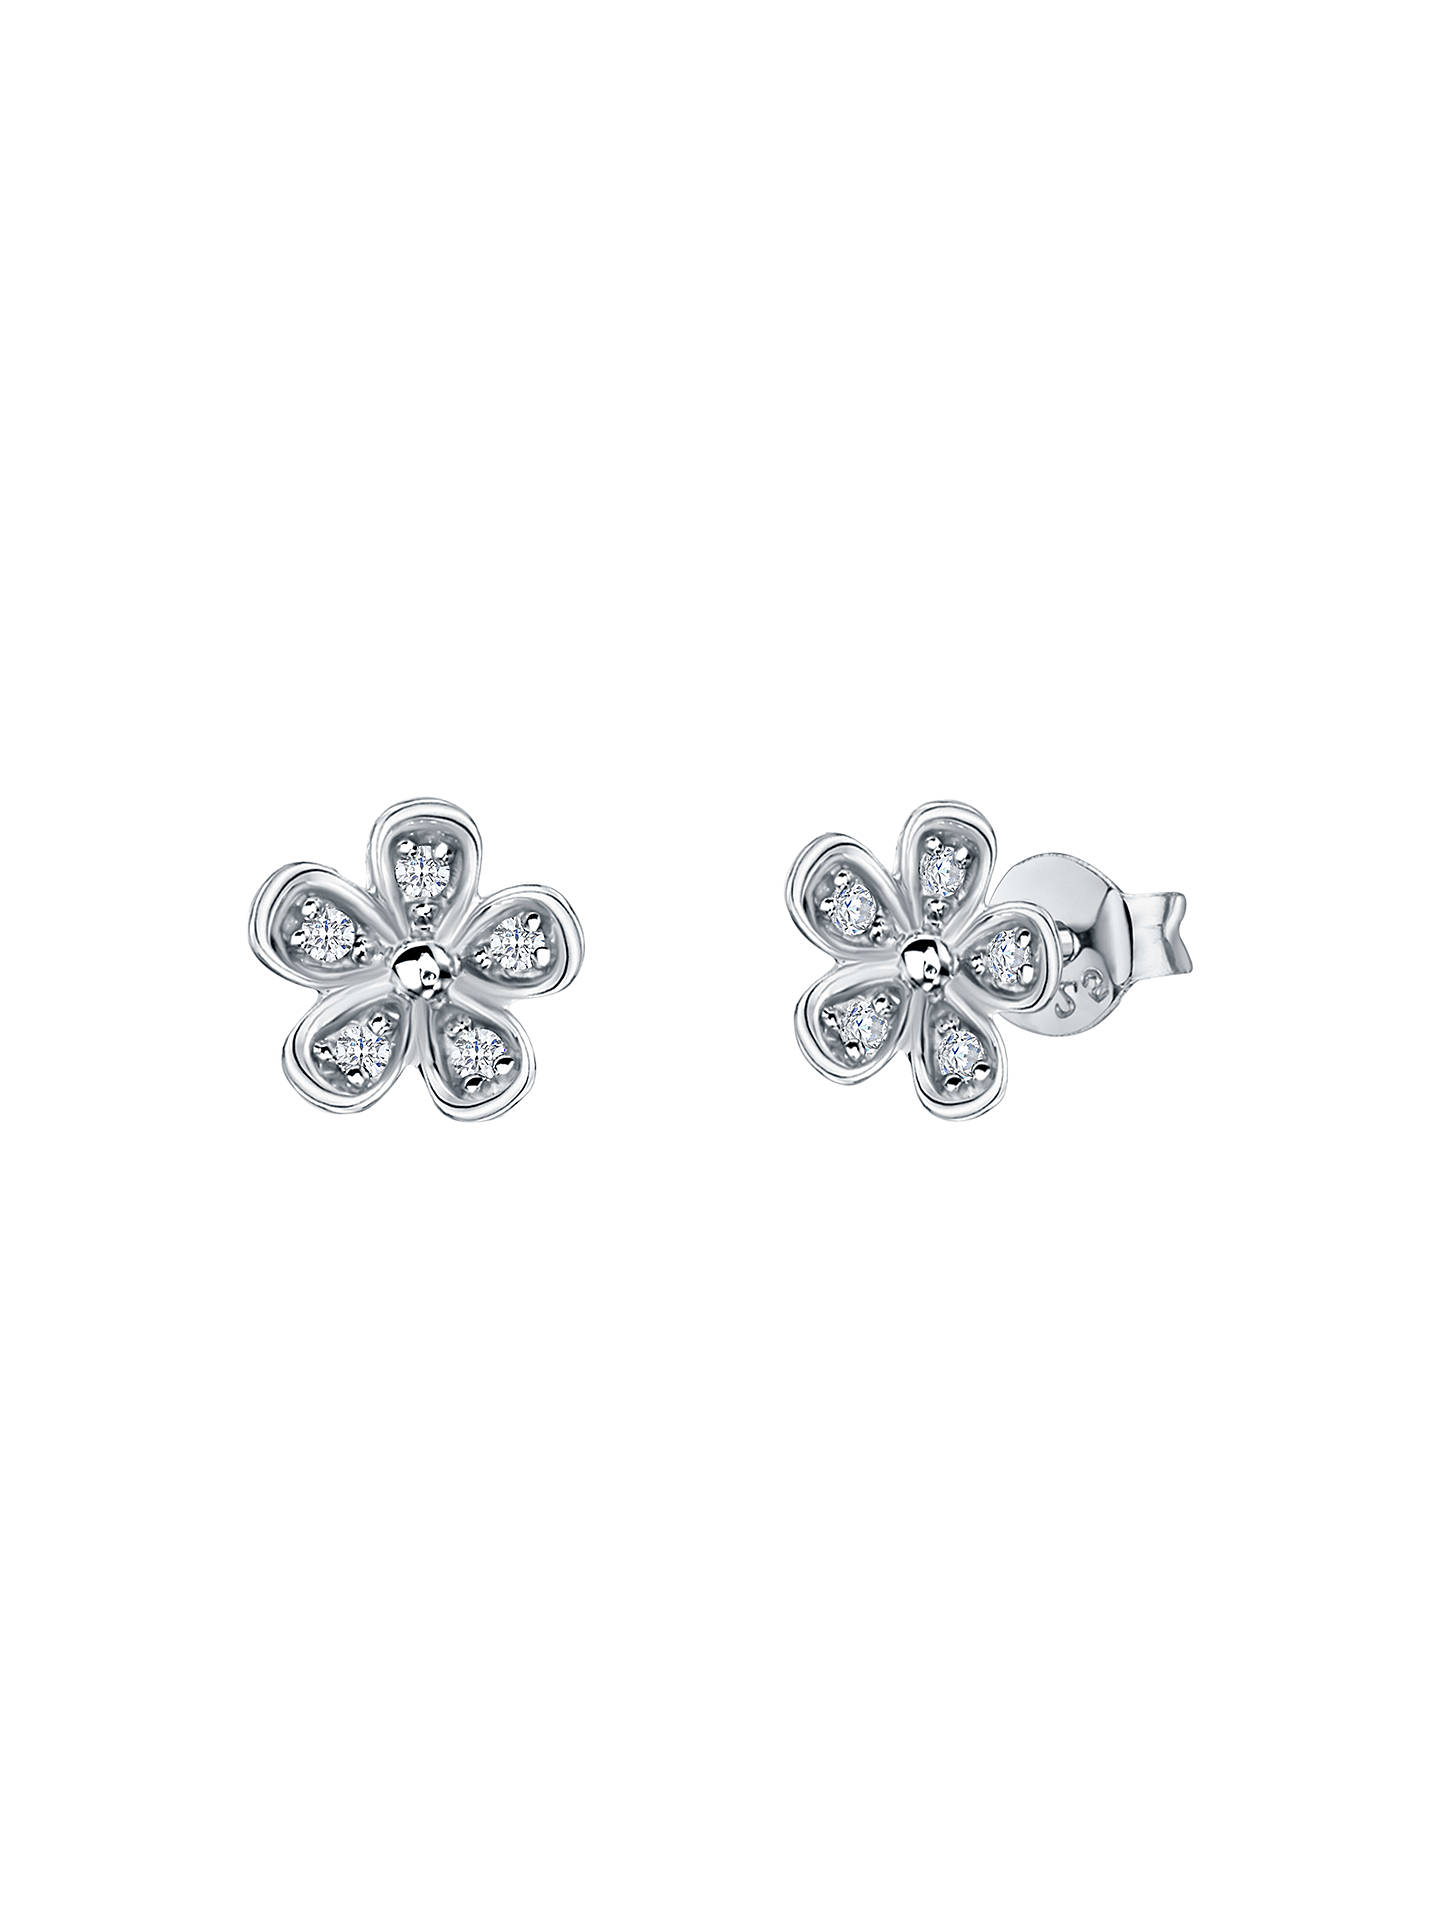 e83877e90 Buy Jools by Jenny Brown Five Petal Pavé Stud Earrings Online at  johnlewis.com